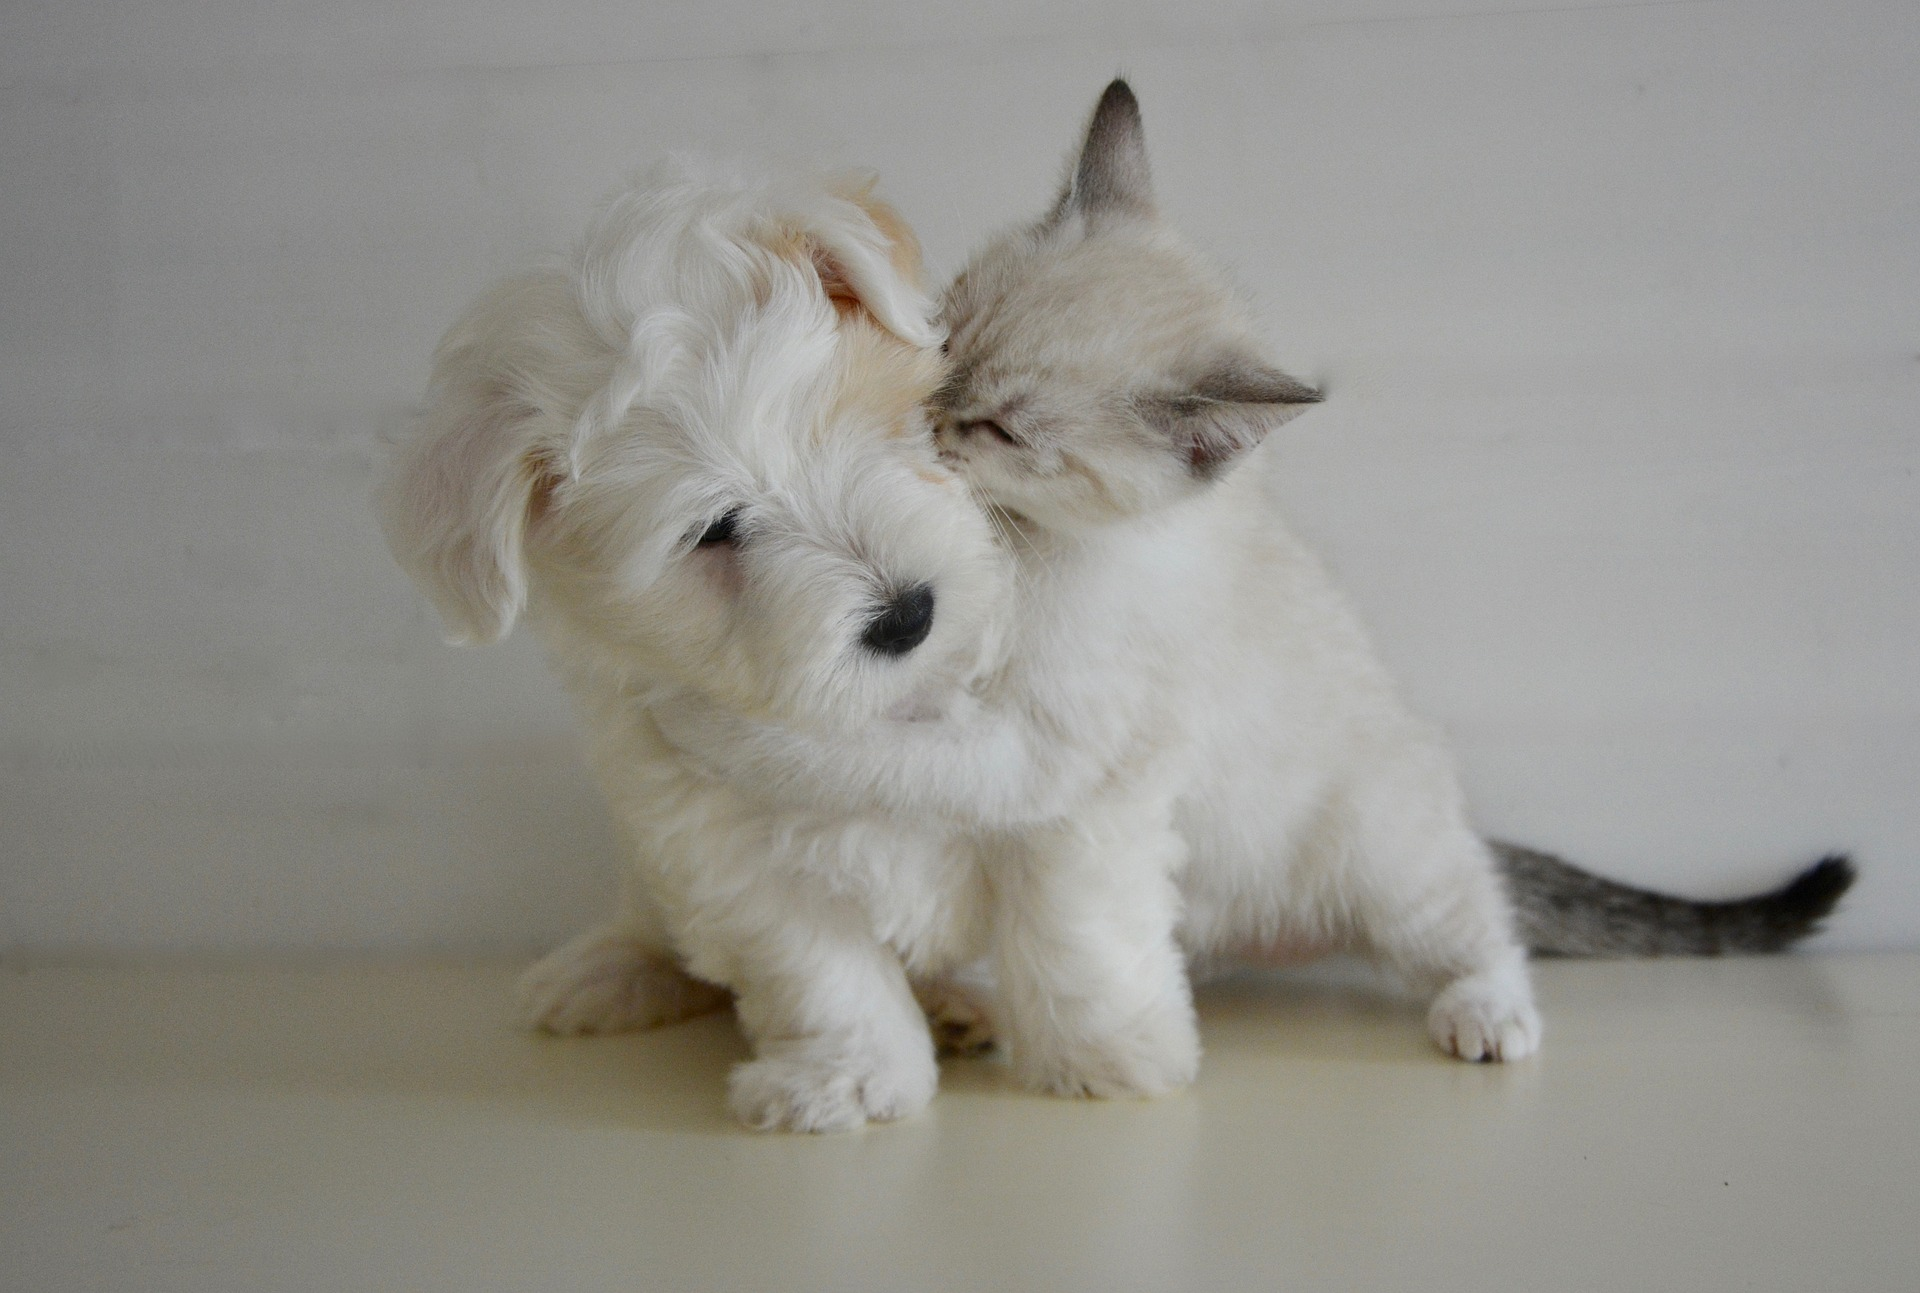 dog baby teeth - puppy and kitten hugging